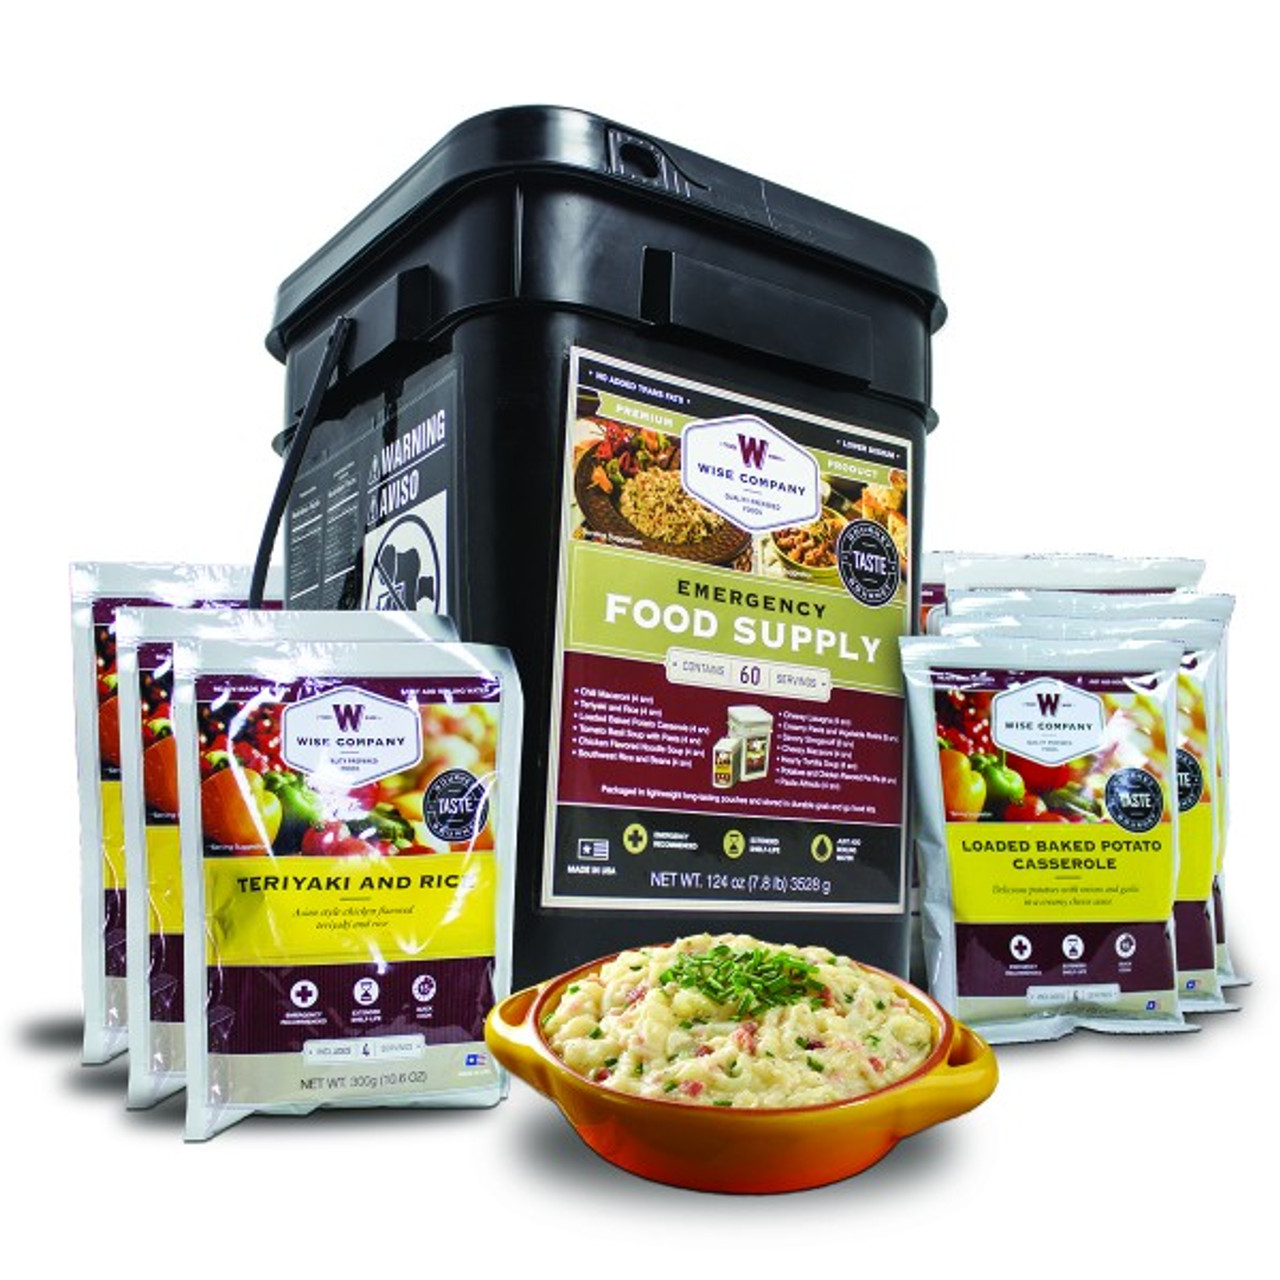 Wise 60 Serving Entree Emergency Food Supply for 1 Person